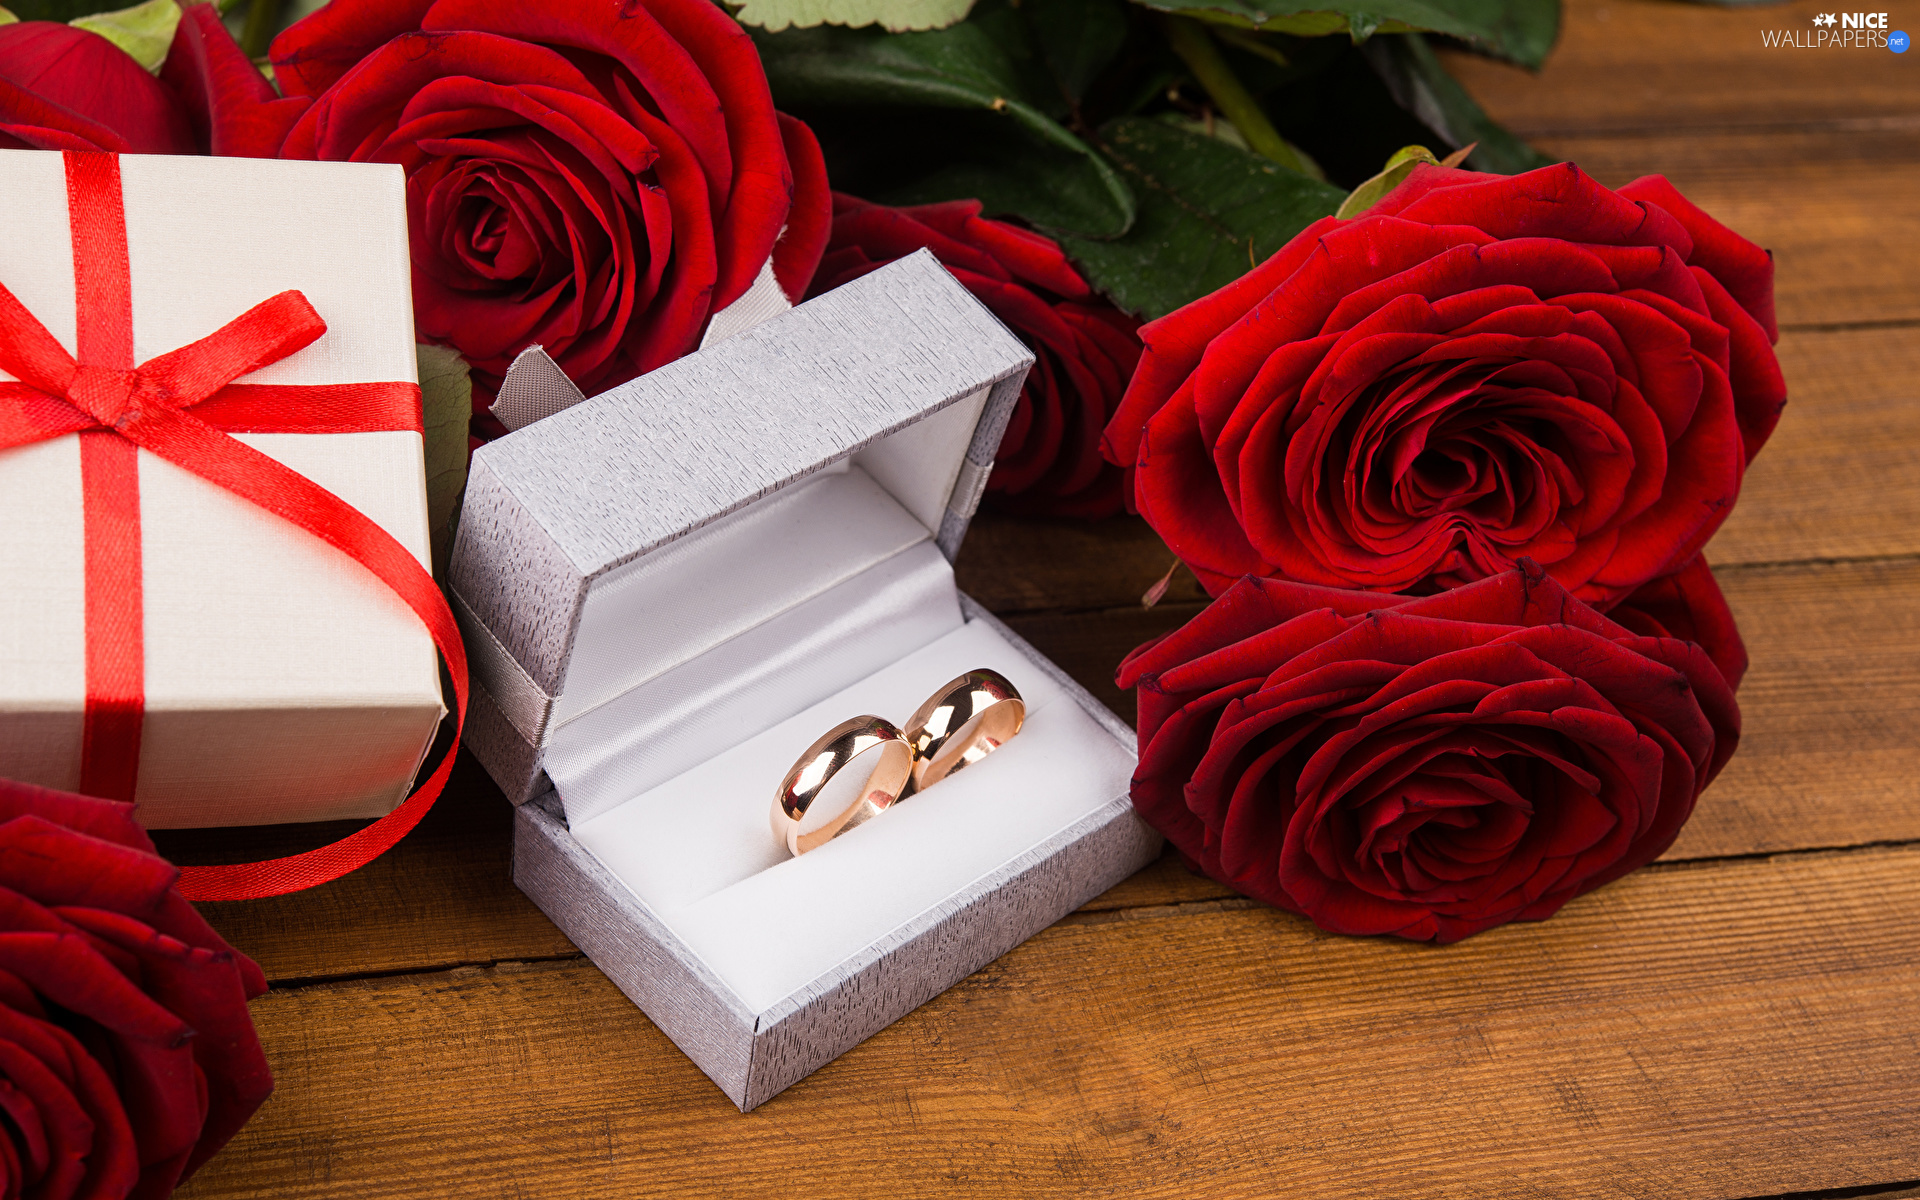 roses, Flowers, Red, bouquet, Present, boarding, rings, Box, marriage